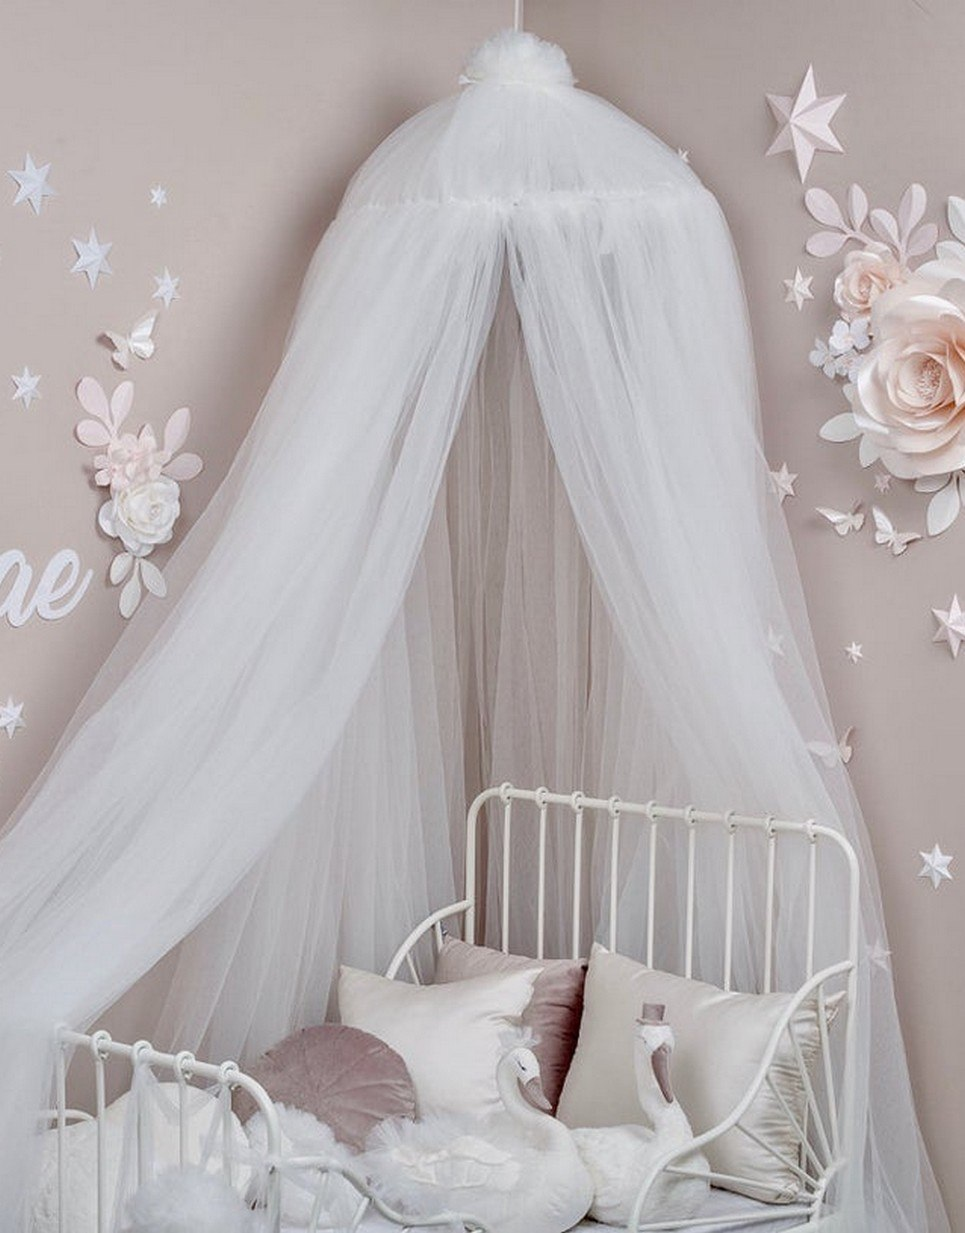 White Tulle Bed Canopy